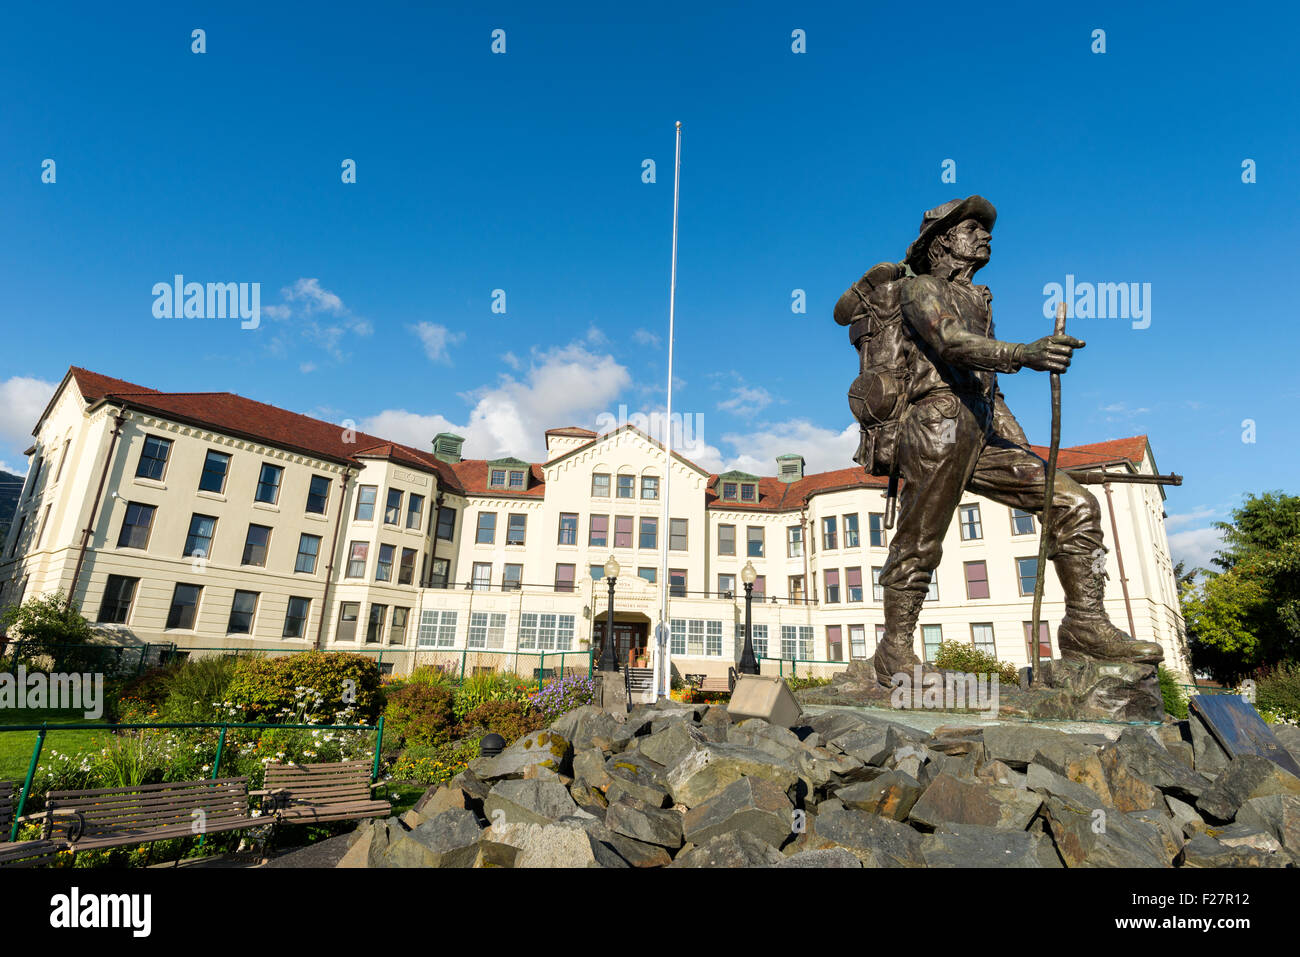 Prospector statue in front of the Pioneer Home in Sitka, Alaska. - Stock Image